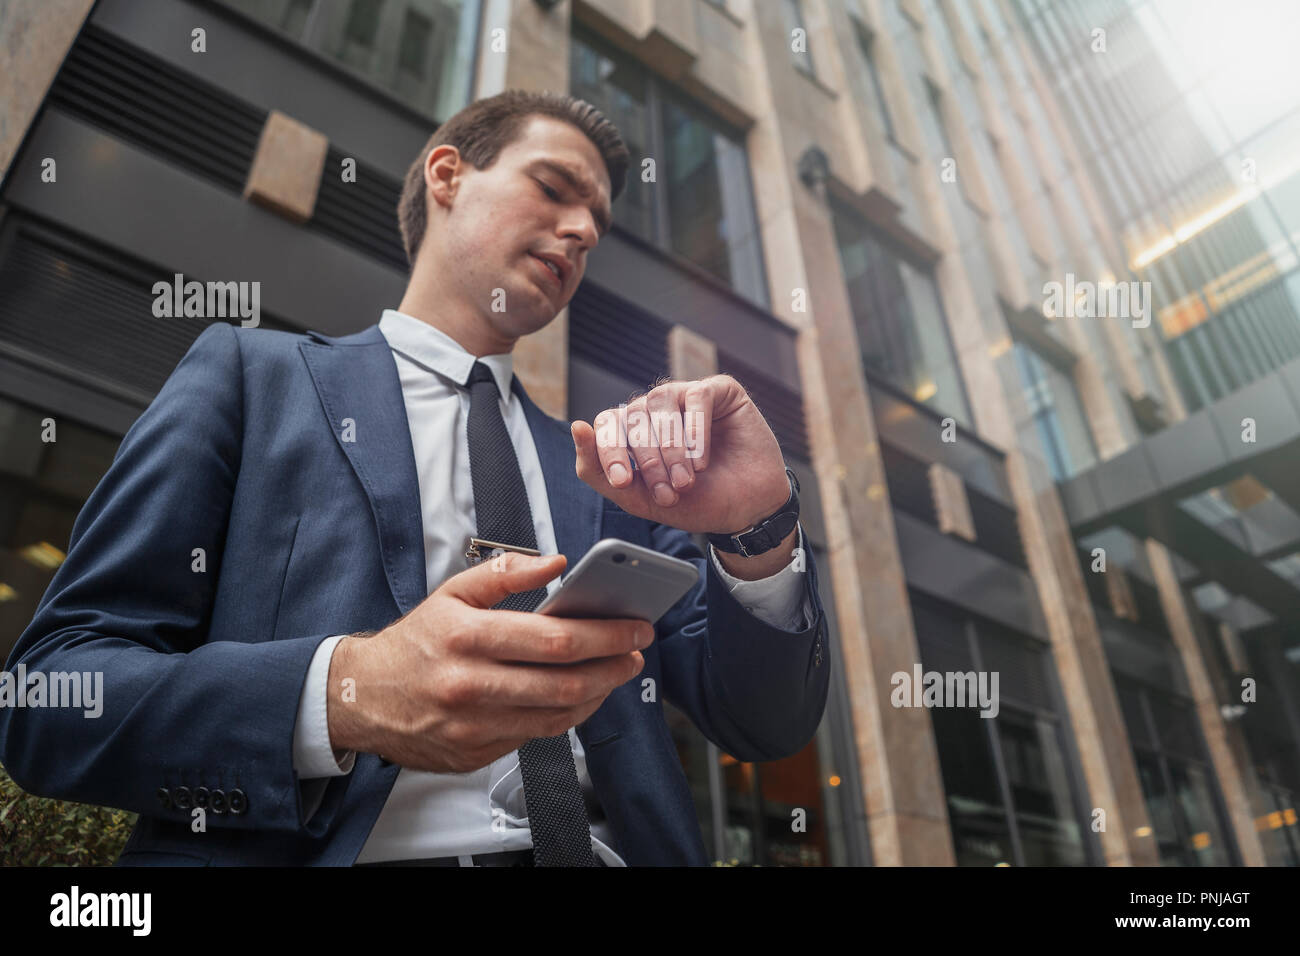 Close up of businessman holding mobile phone in hand and looking at watches. - Stock Image